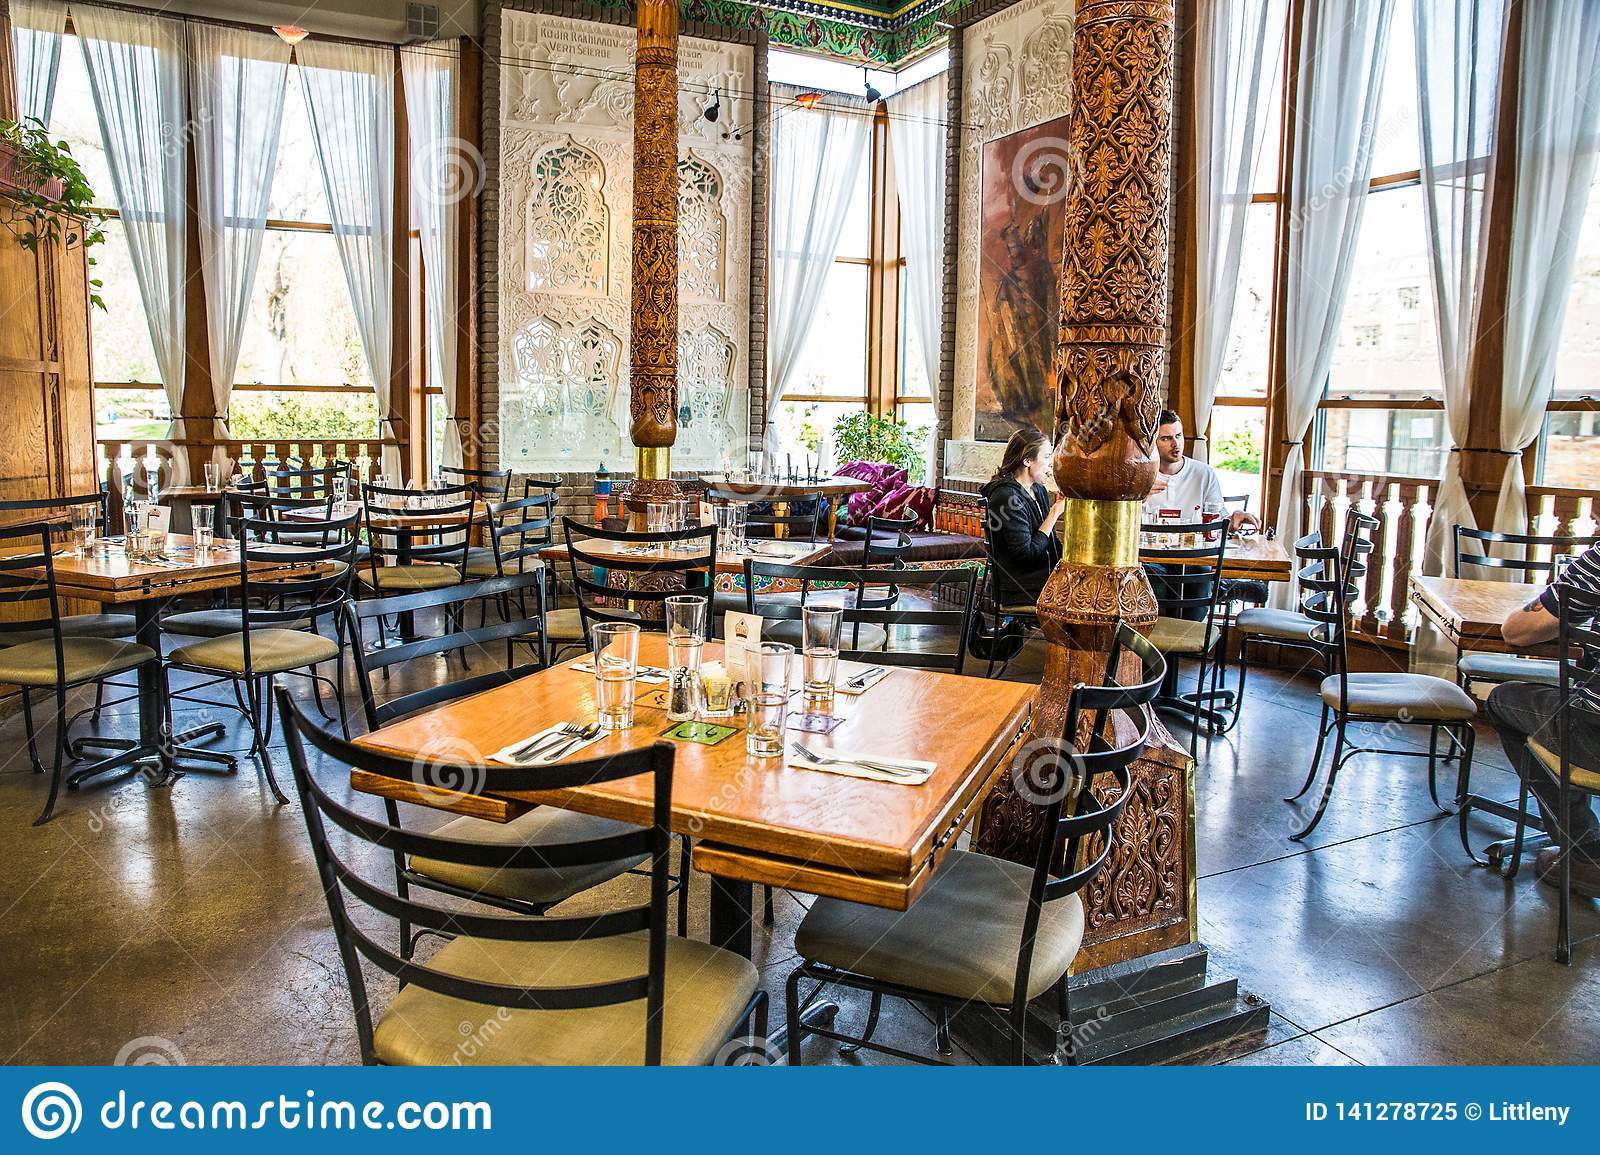 Dushanbe Teahouse In Boulder Colorado Editorial Image Image Of